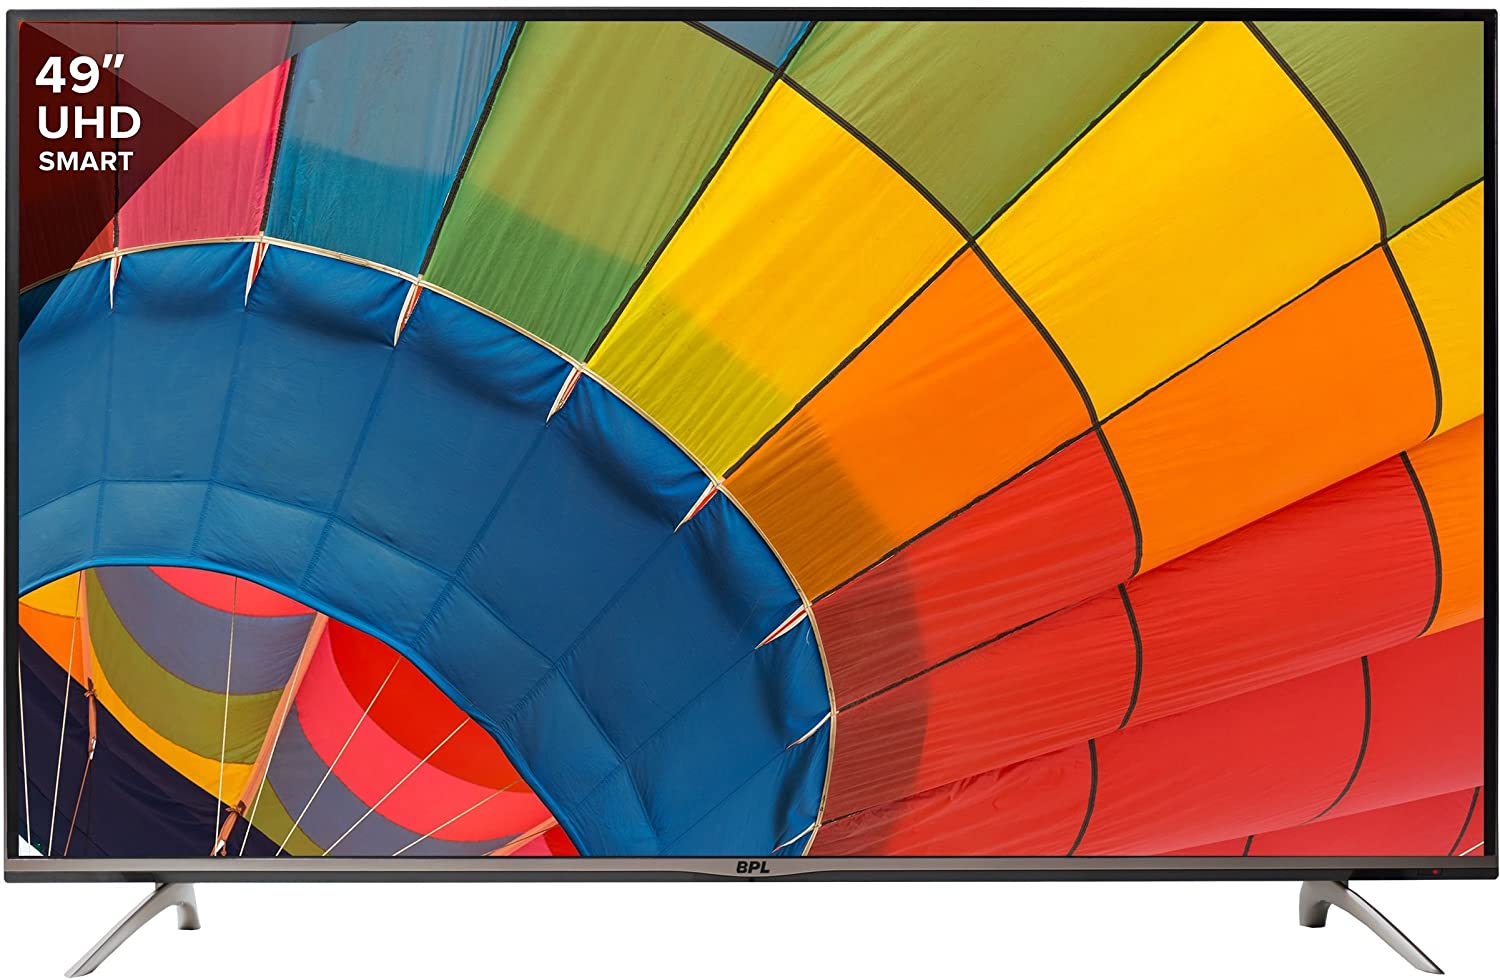 Best 50 inch 4k TVs in India under 50,000 - BPL Steller BPL123E36S4C 4K Ultra HD LED Smart TV